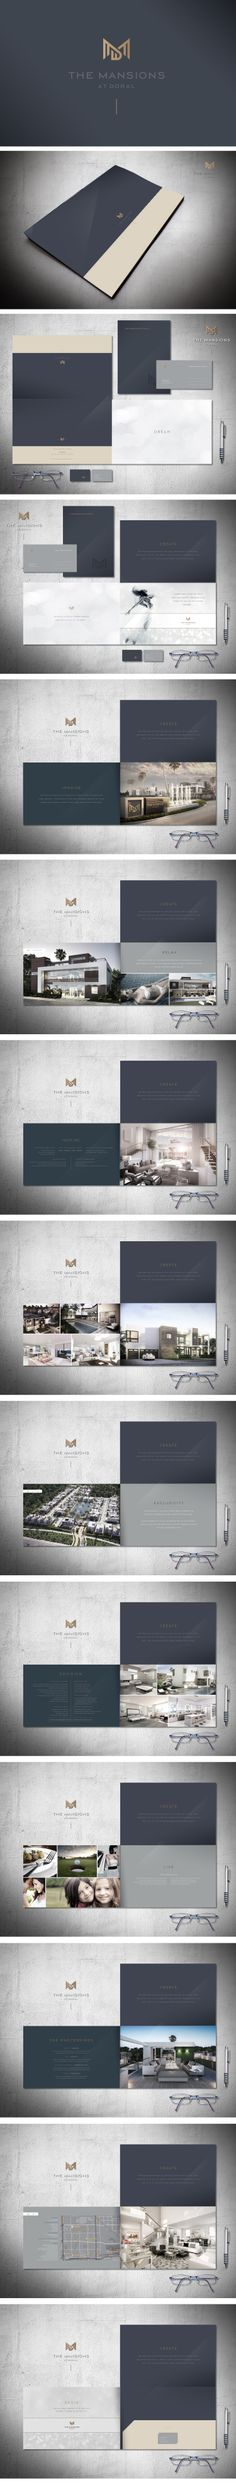 The Mansions at Doral - Brochure Luxury Residential Units in Doral, Miami, FL